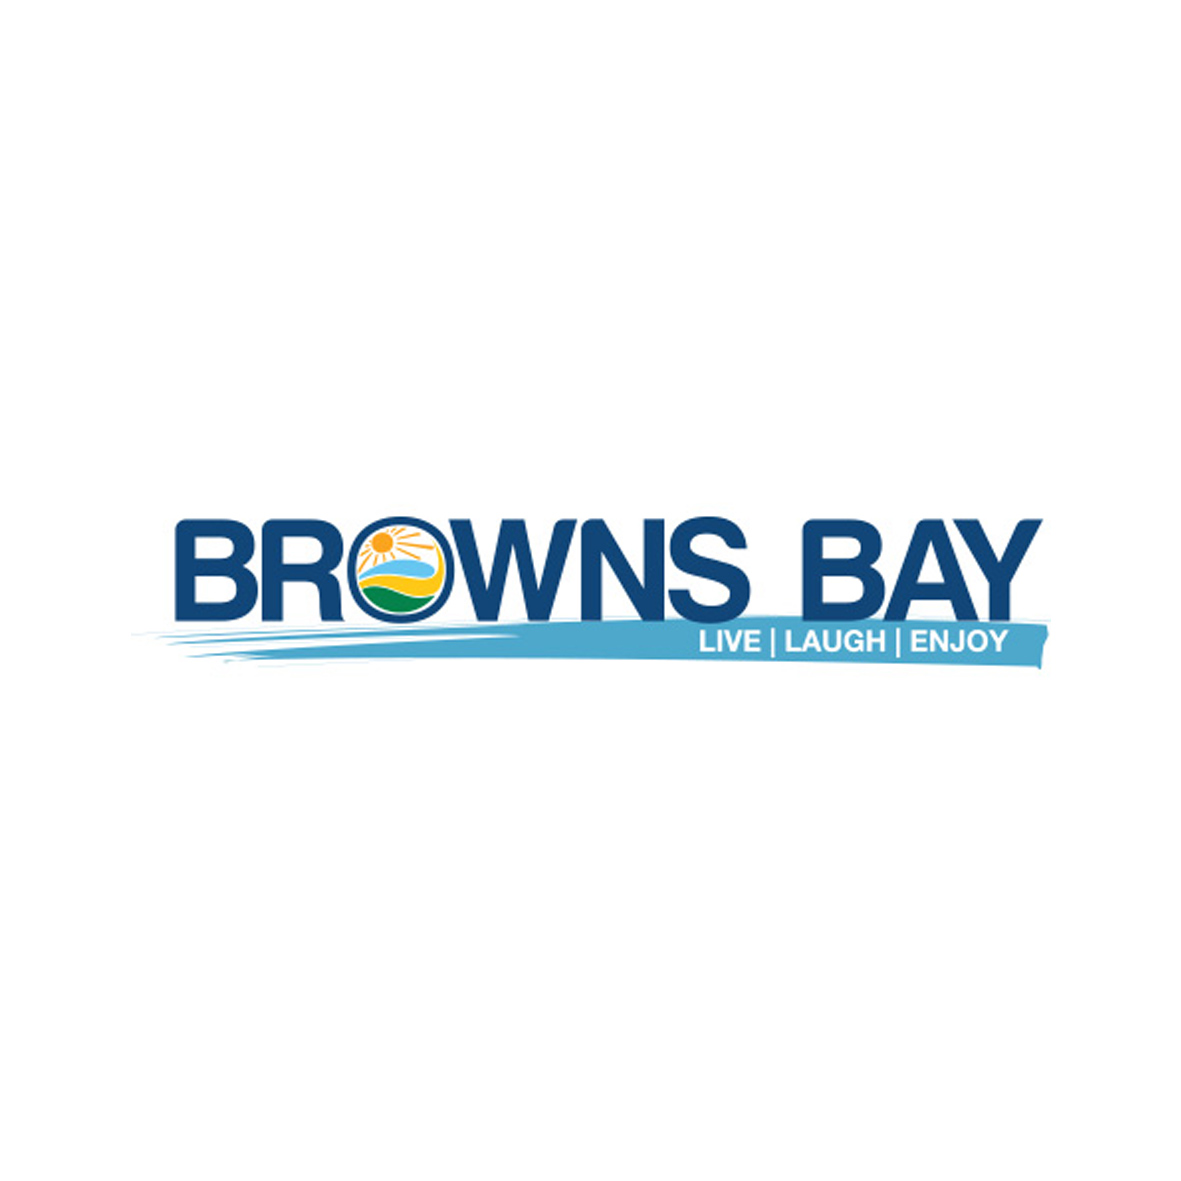 browns bay.jpg